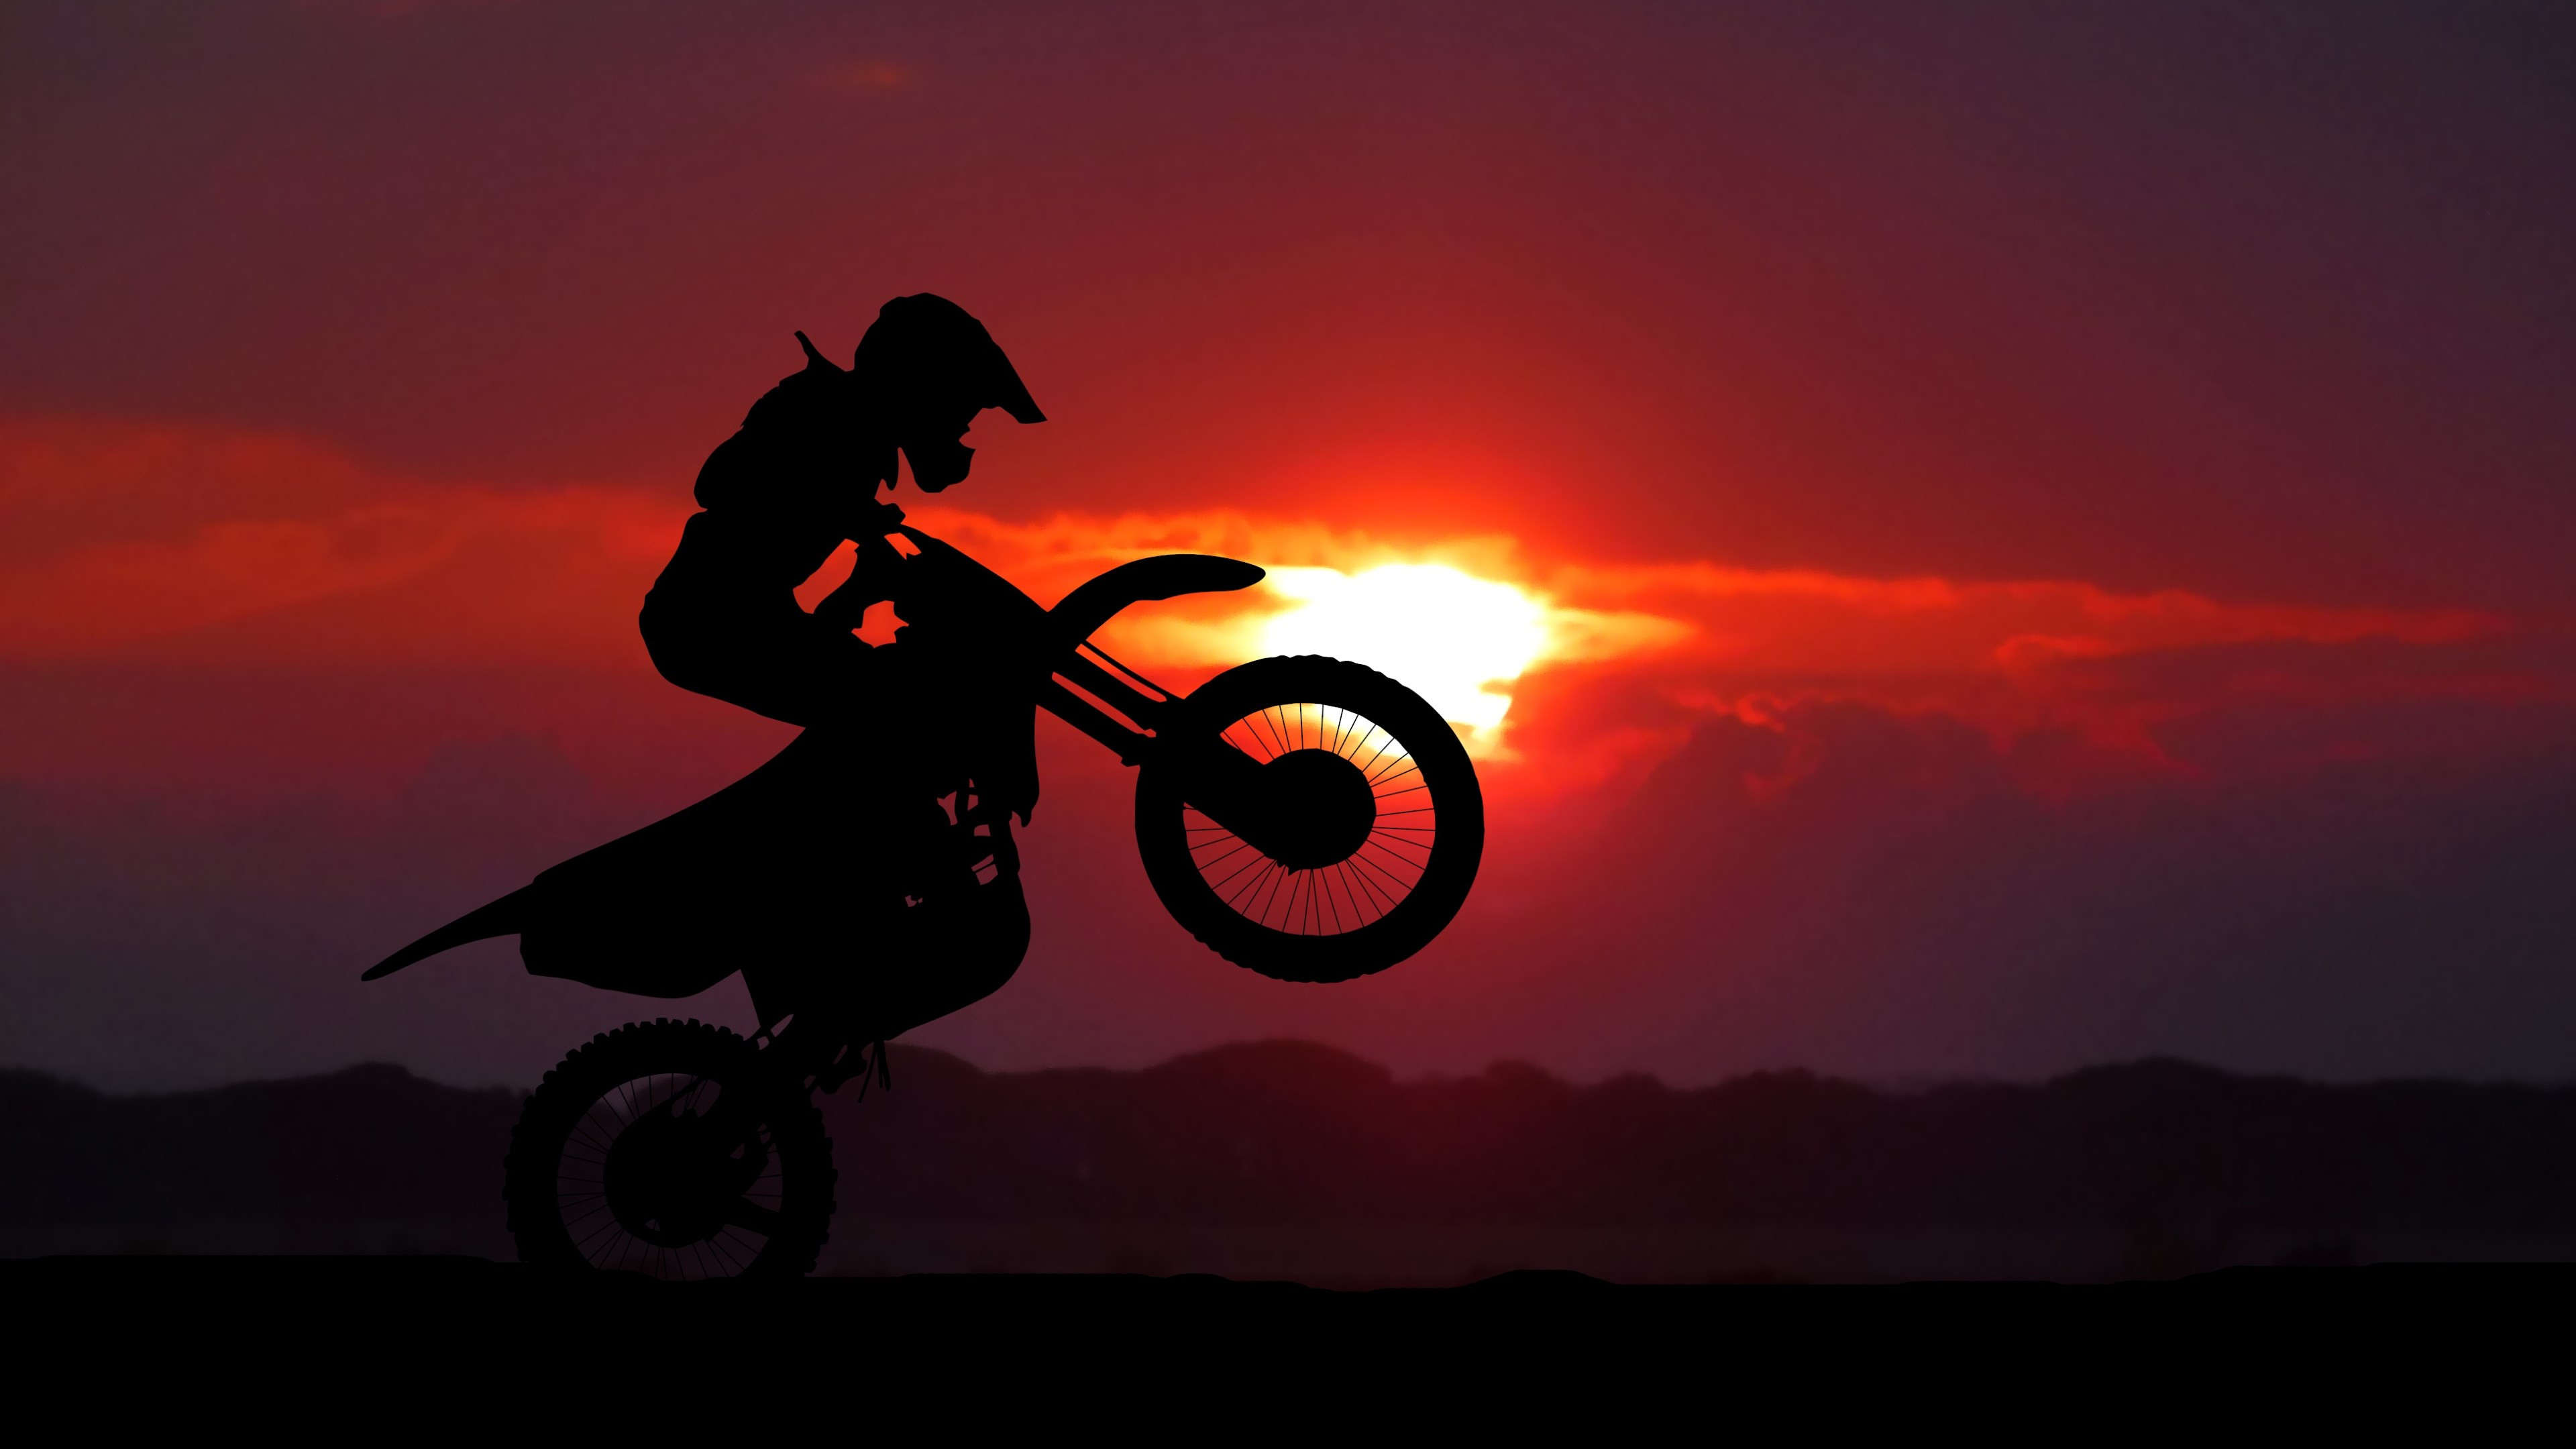 Biker on motorcycle at sunrise wallpaper 3840x2160